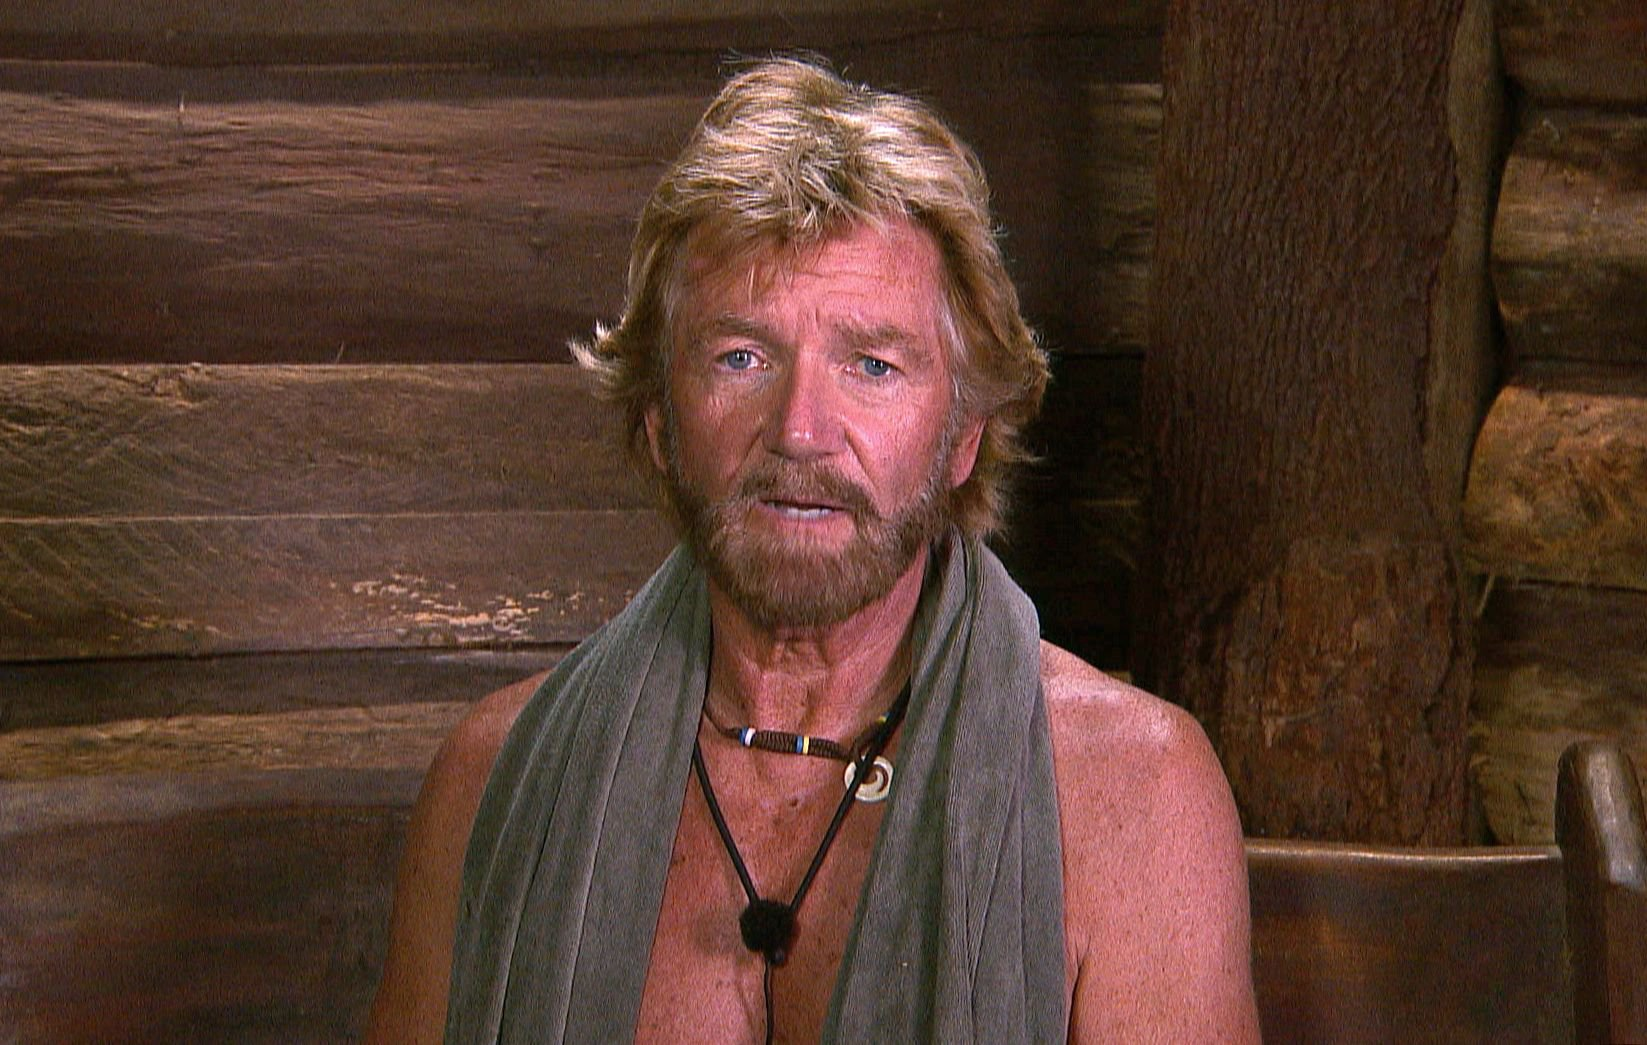 STRICT EMBARGO - NOT TO BE USED BEFORE 22:30 GMT, 30 NOV 2018 - EDITORIAL USE ONLY Mandatory Credit: Photo by ITV/REX/Shutterstock (10004390hs) Noel Has Lost The Pot - Noel Edmonds 'I'm a Celebrity... Get Me Out of Here!' TV Show, Series 18, Australia - 30 Nov 2018